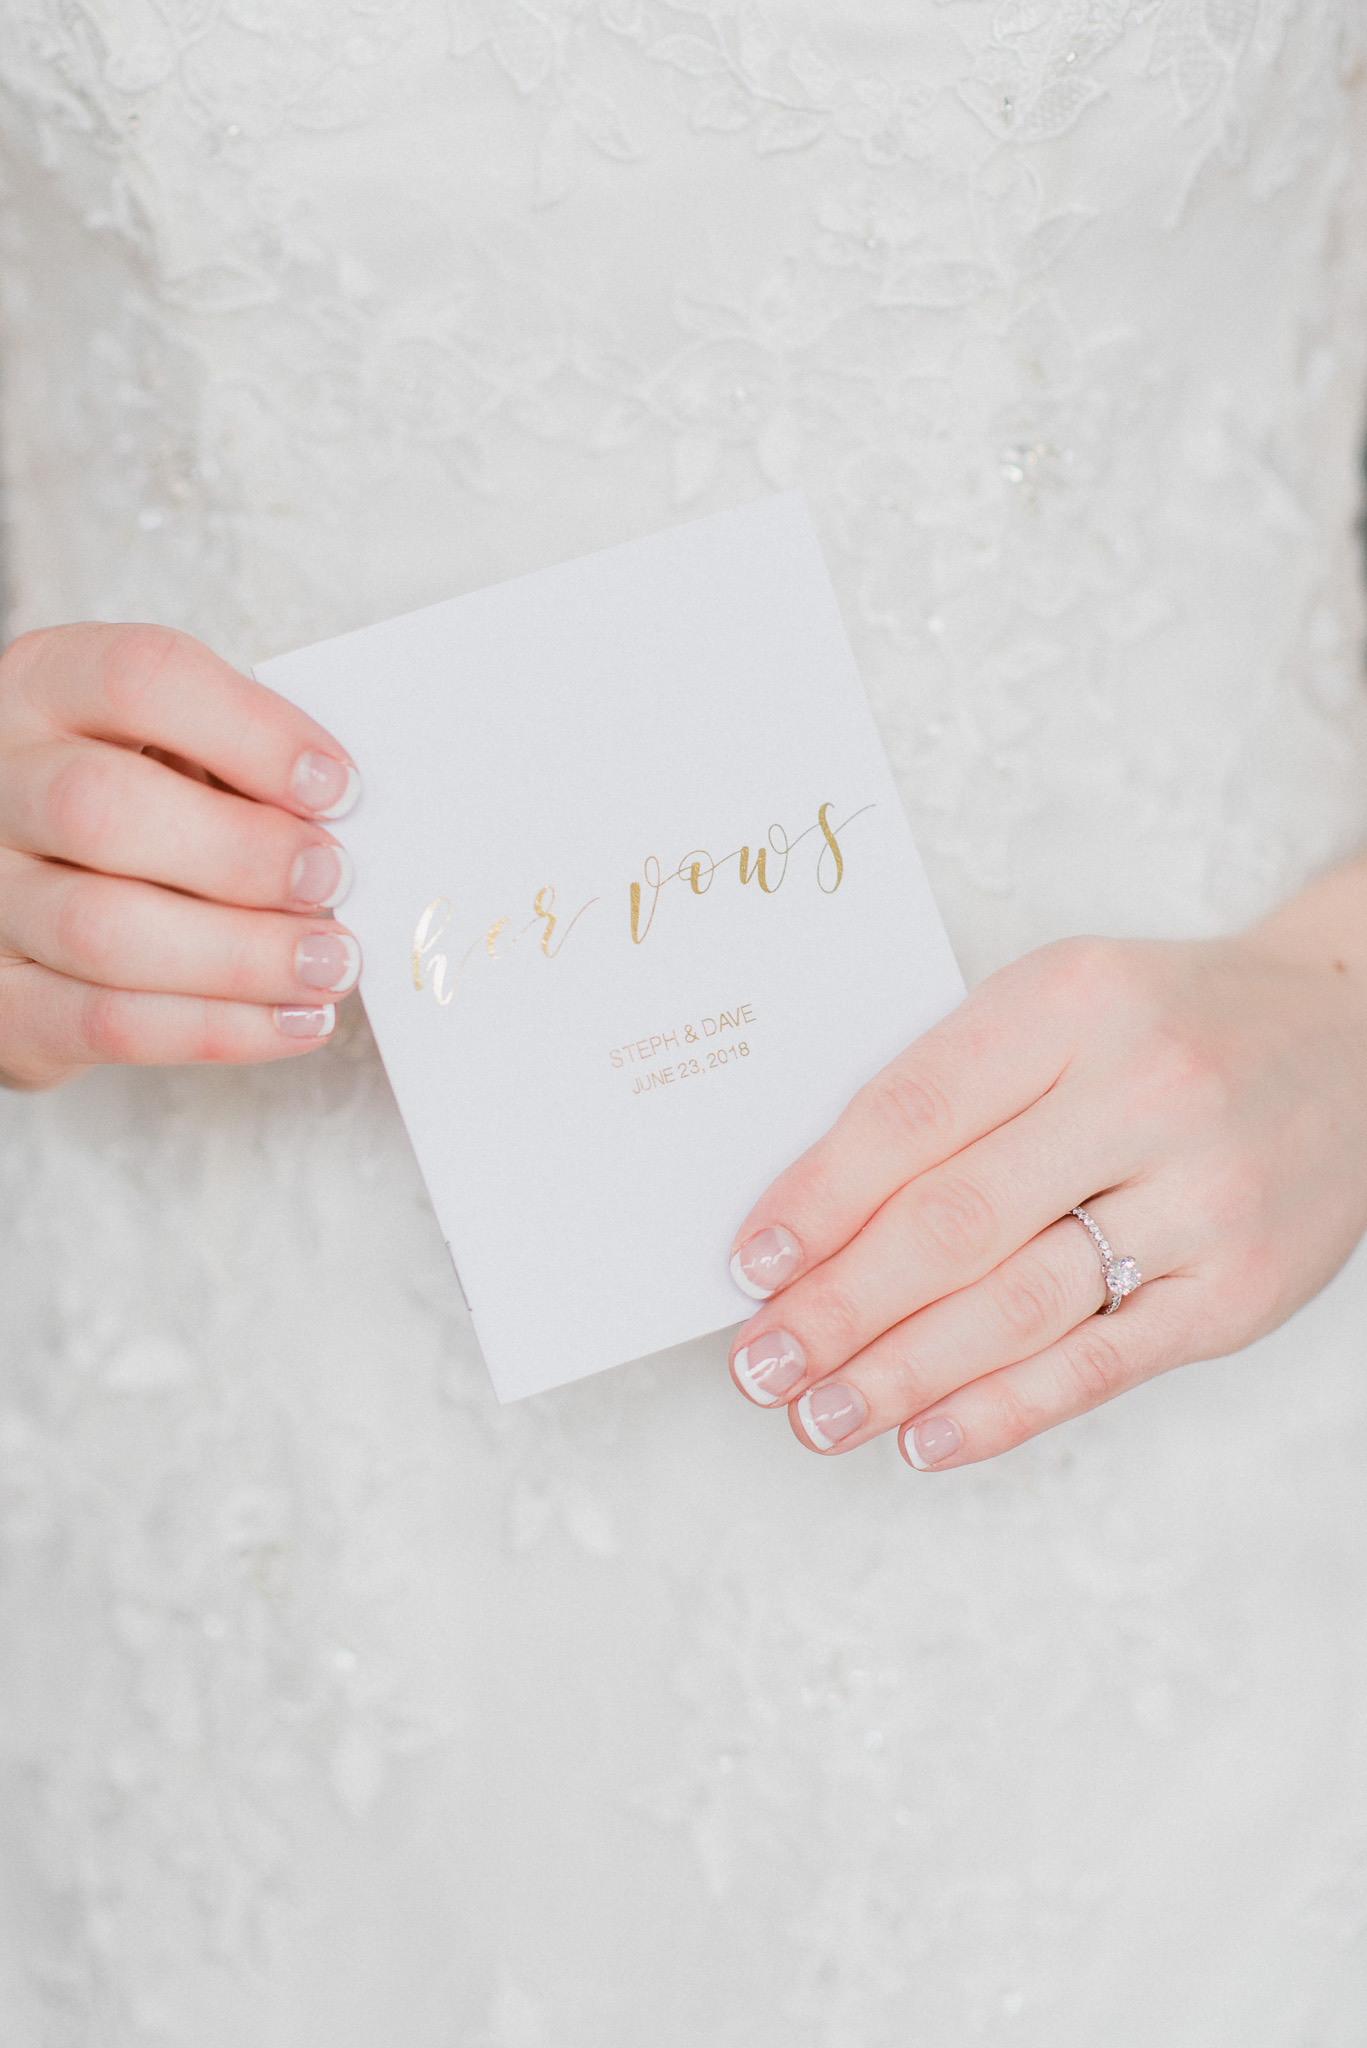 Vow Books | Photographed by Jenn Kavanagh Photography